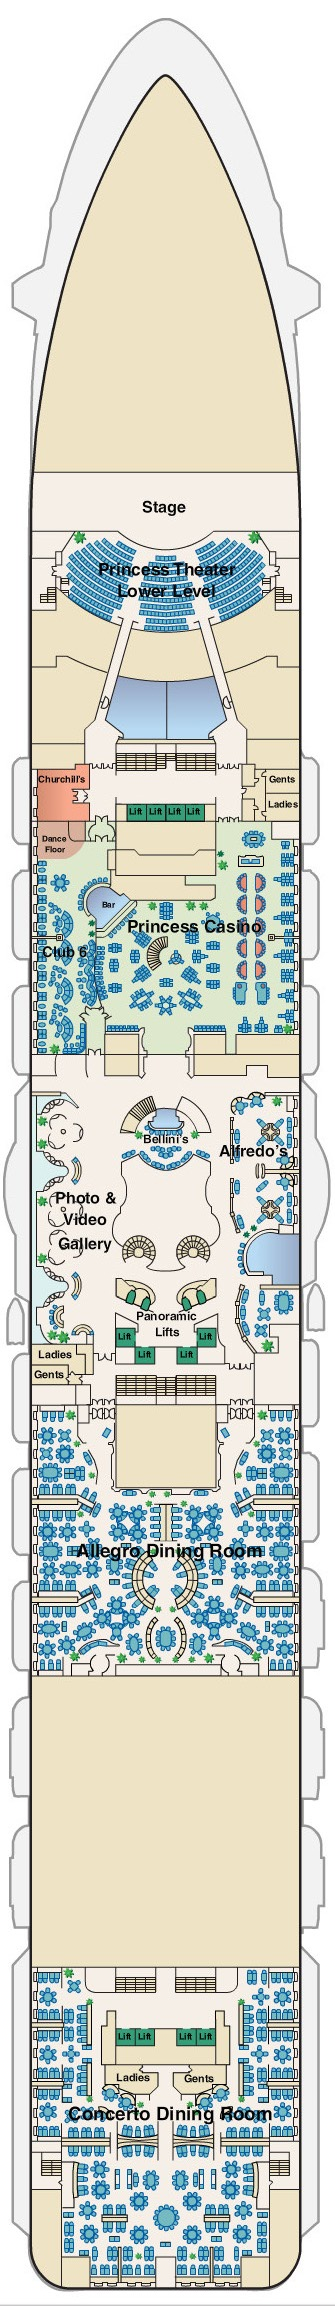 Regal Princess Deck 6 - Fiesta layout